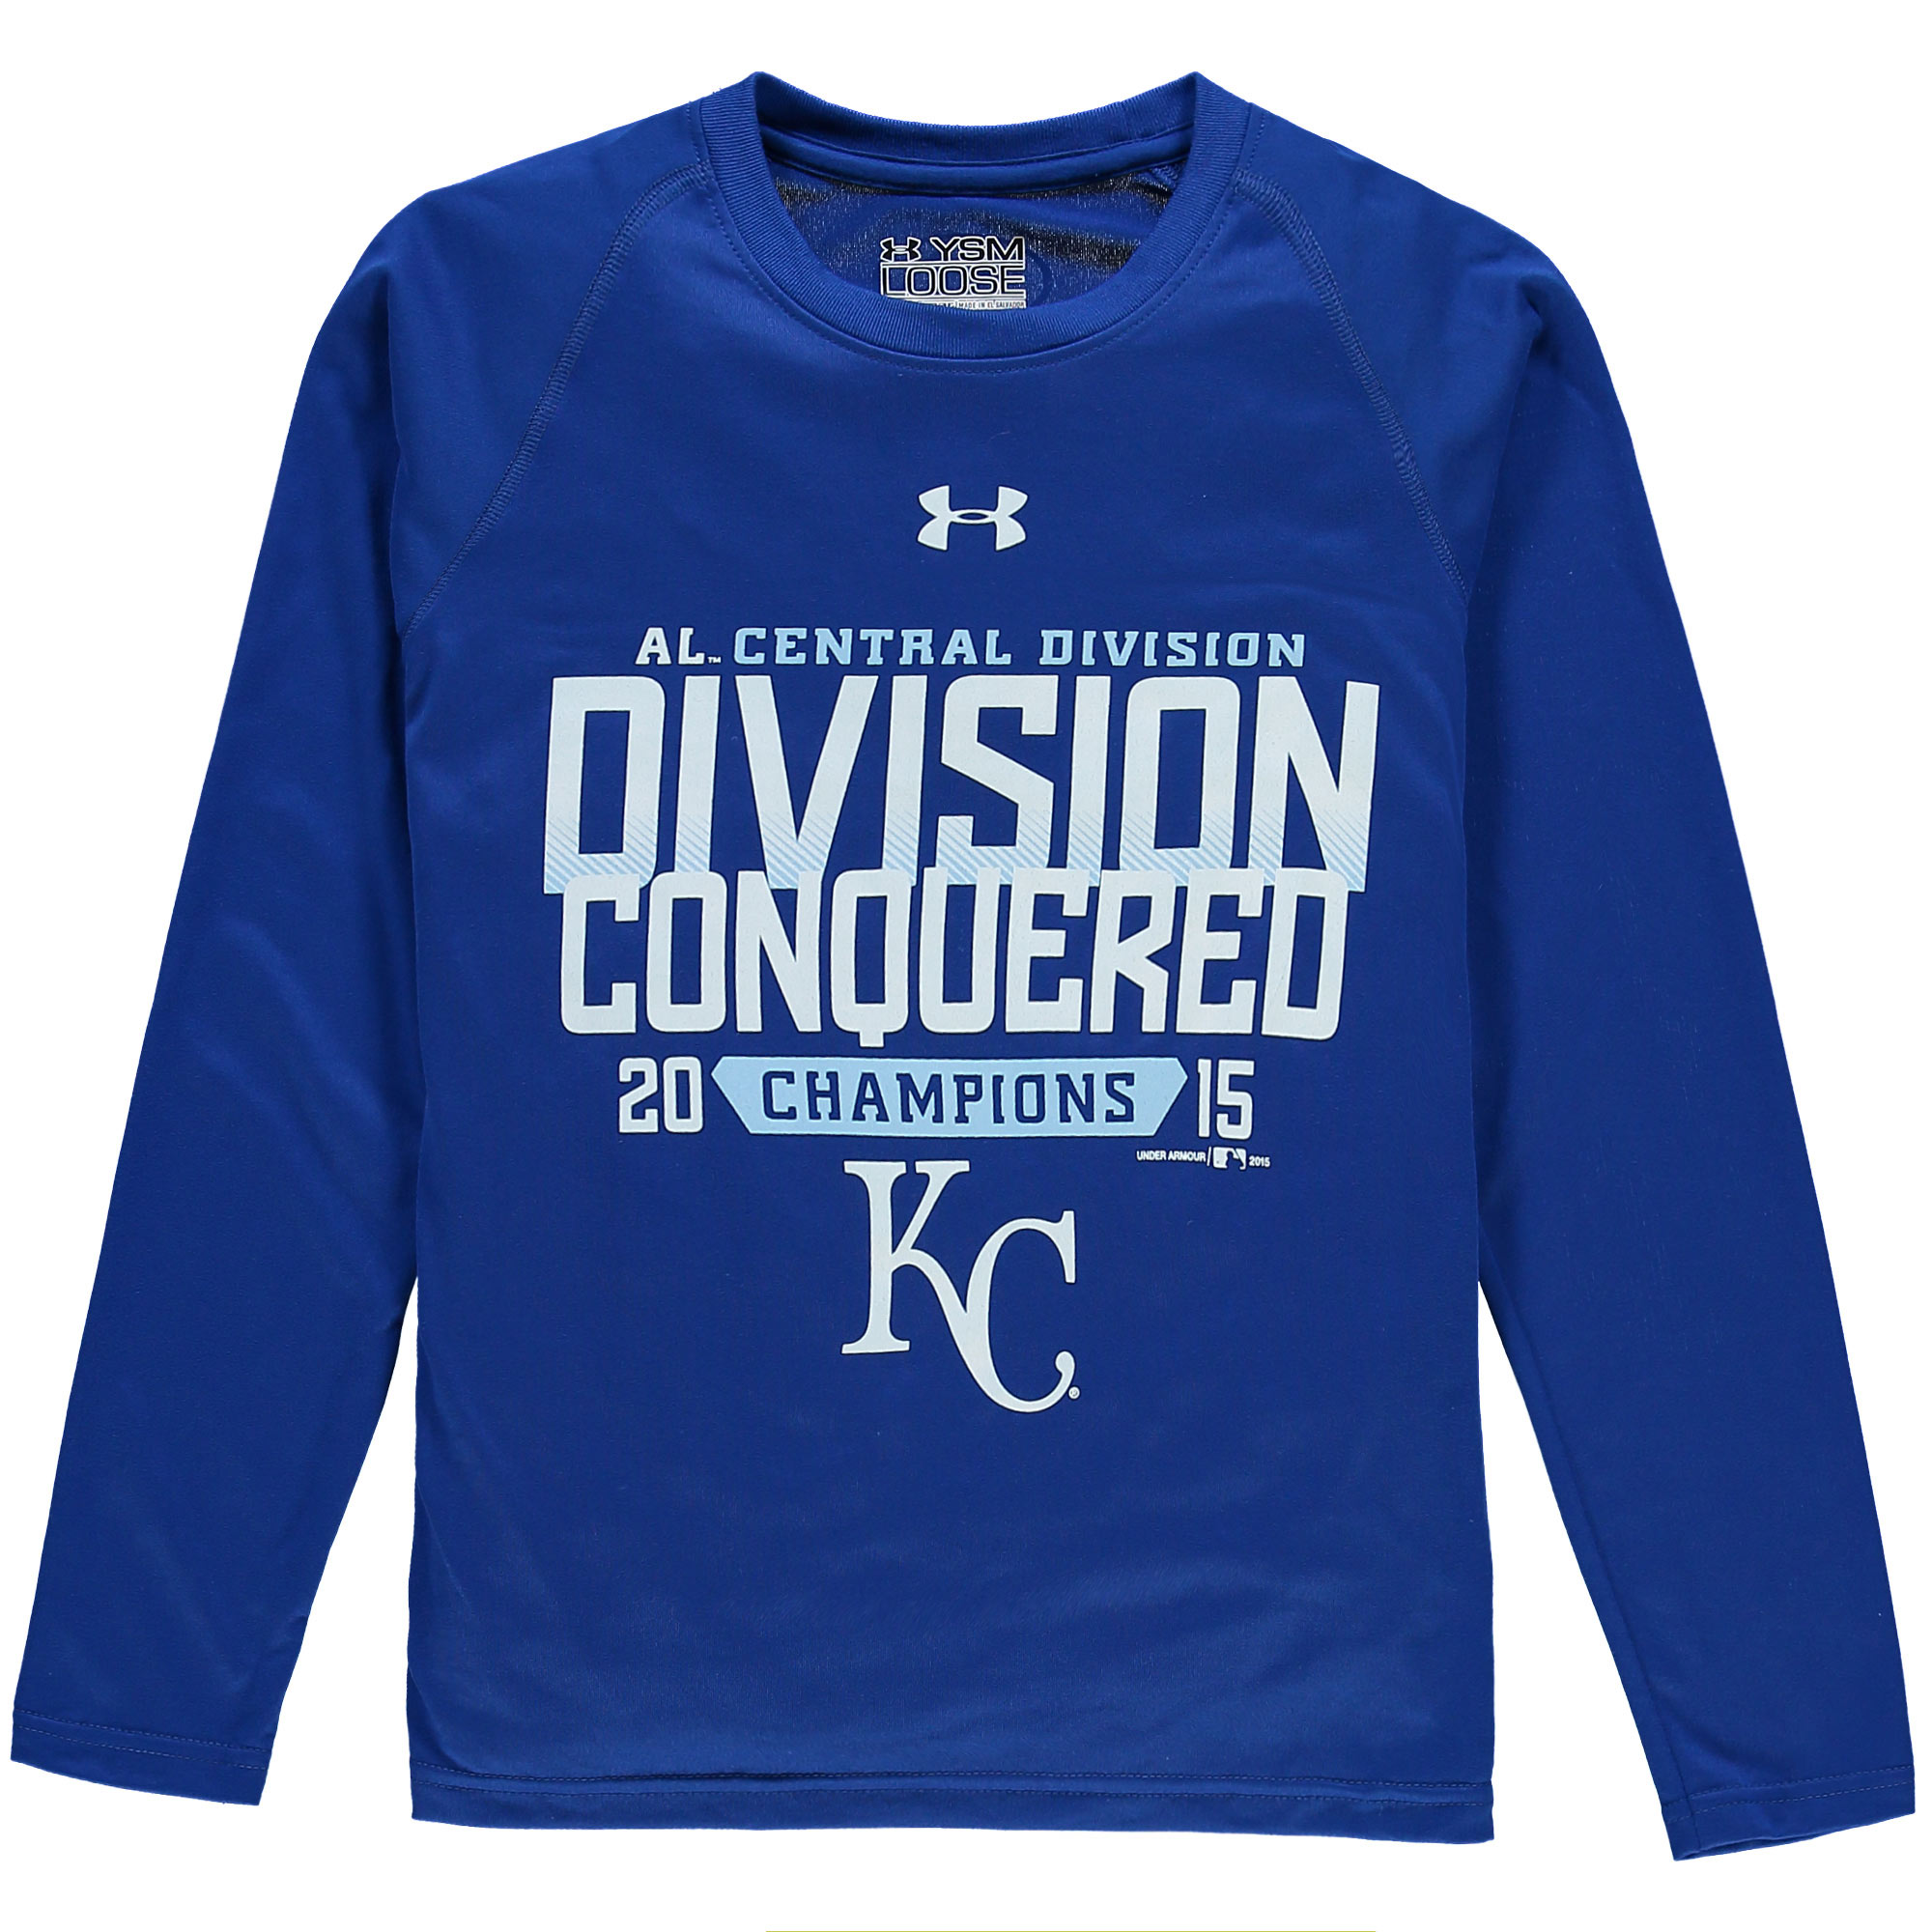 Kansas City Royals Under Armour Youth 2015 AL Central Division Conquered Tech Long Sleeve T-Shirt - Royal